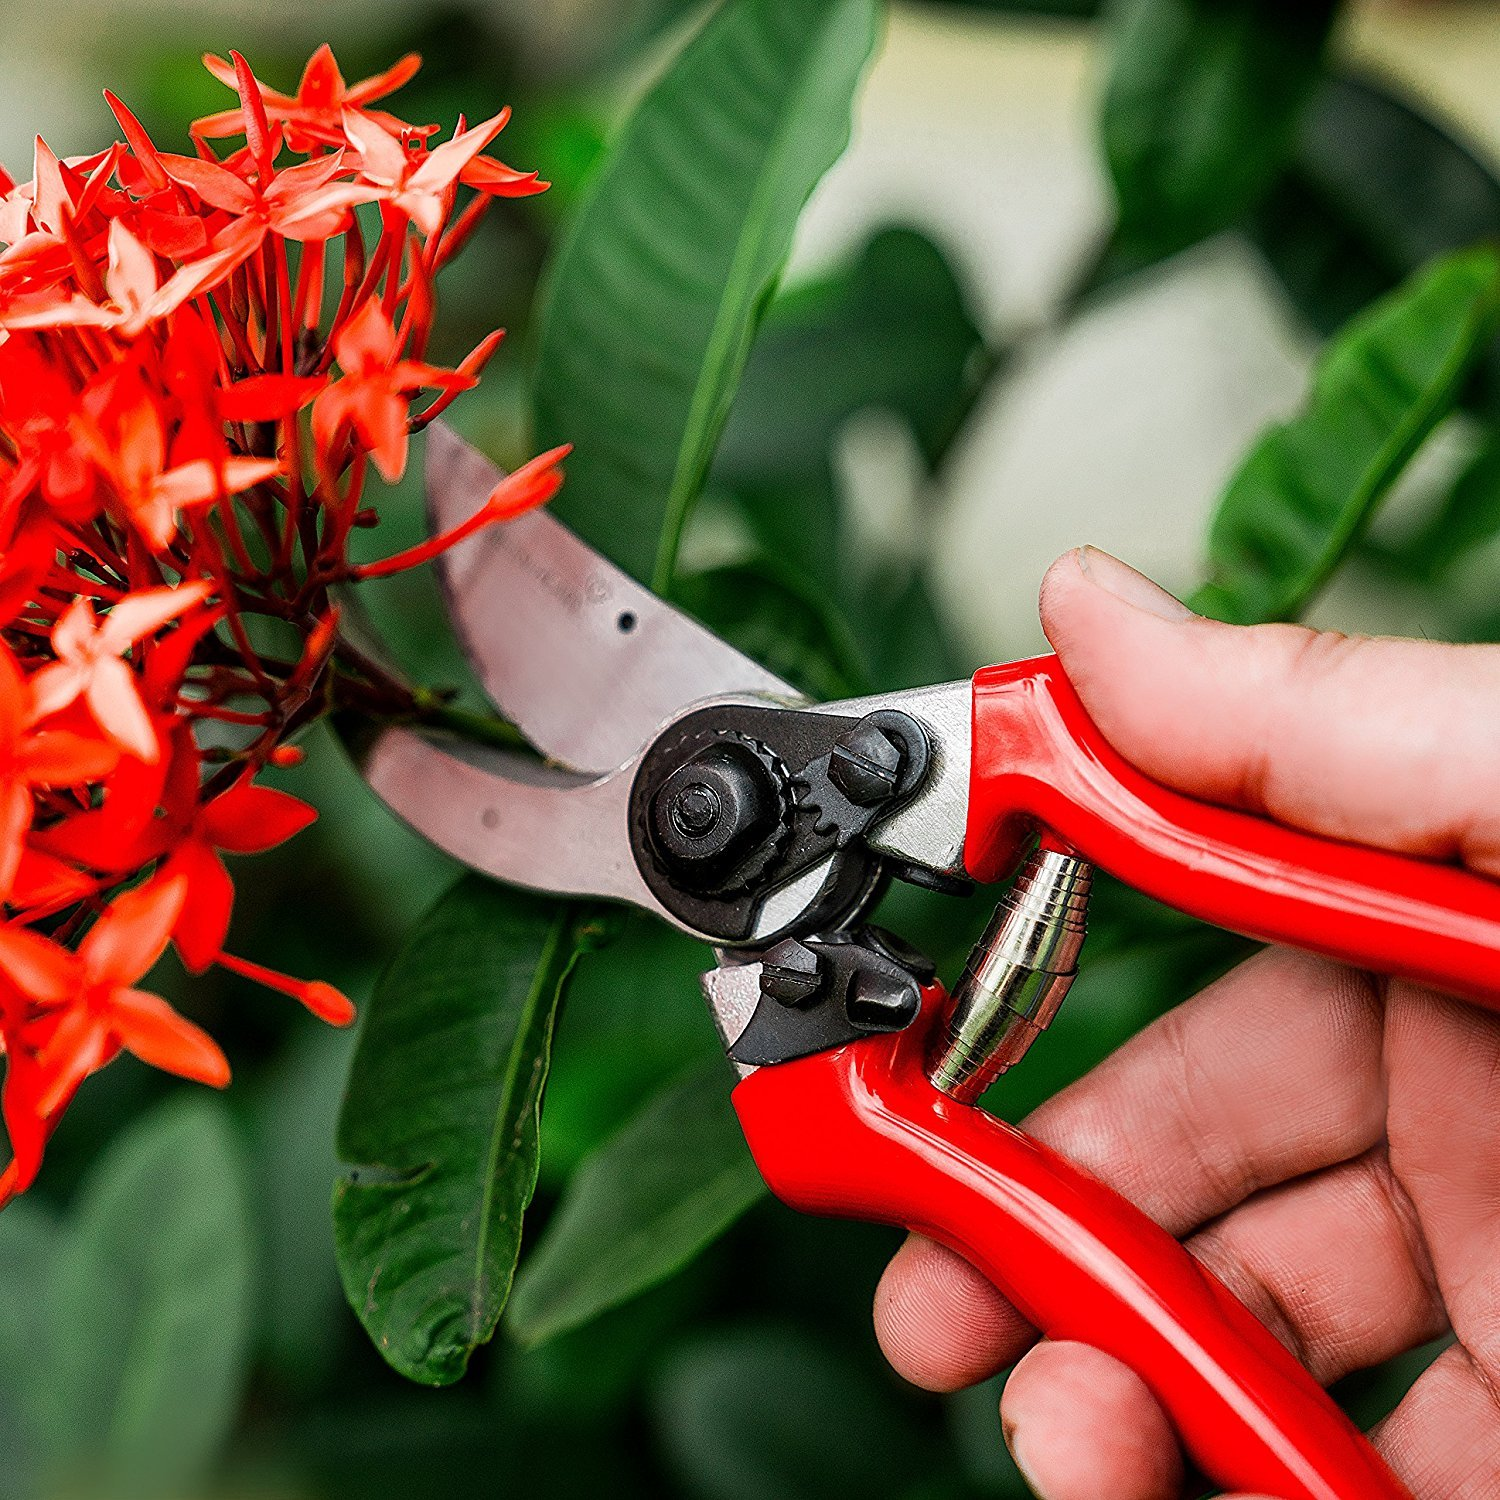 Green Heart Garden Bypass Pruning Shears with Premium Carbon Blades and Safety Lock